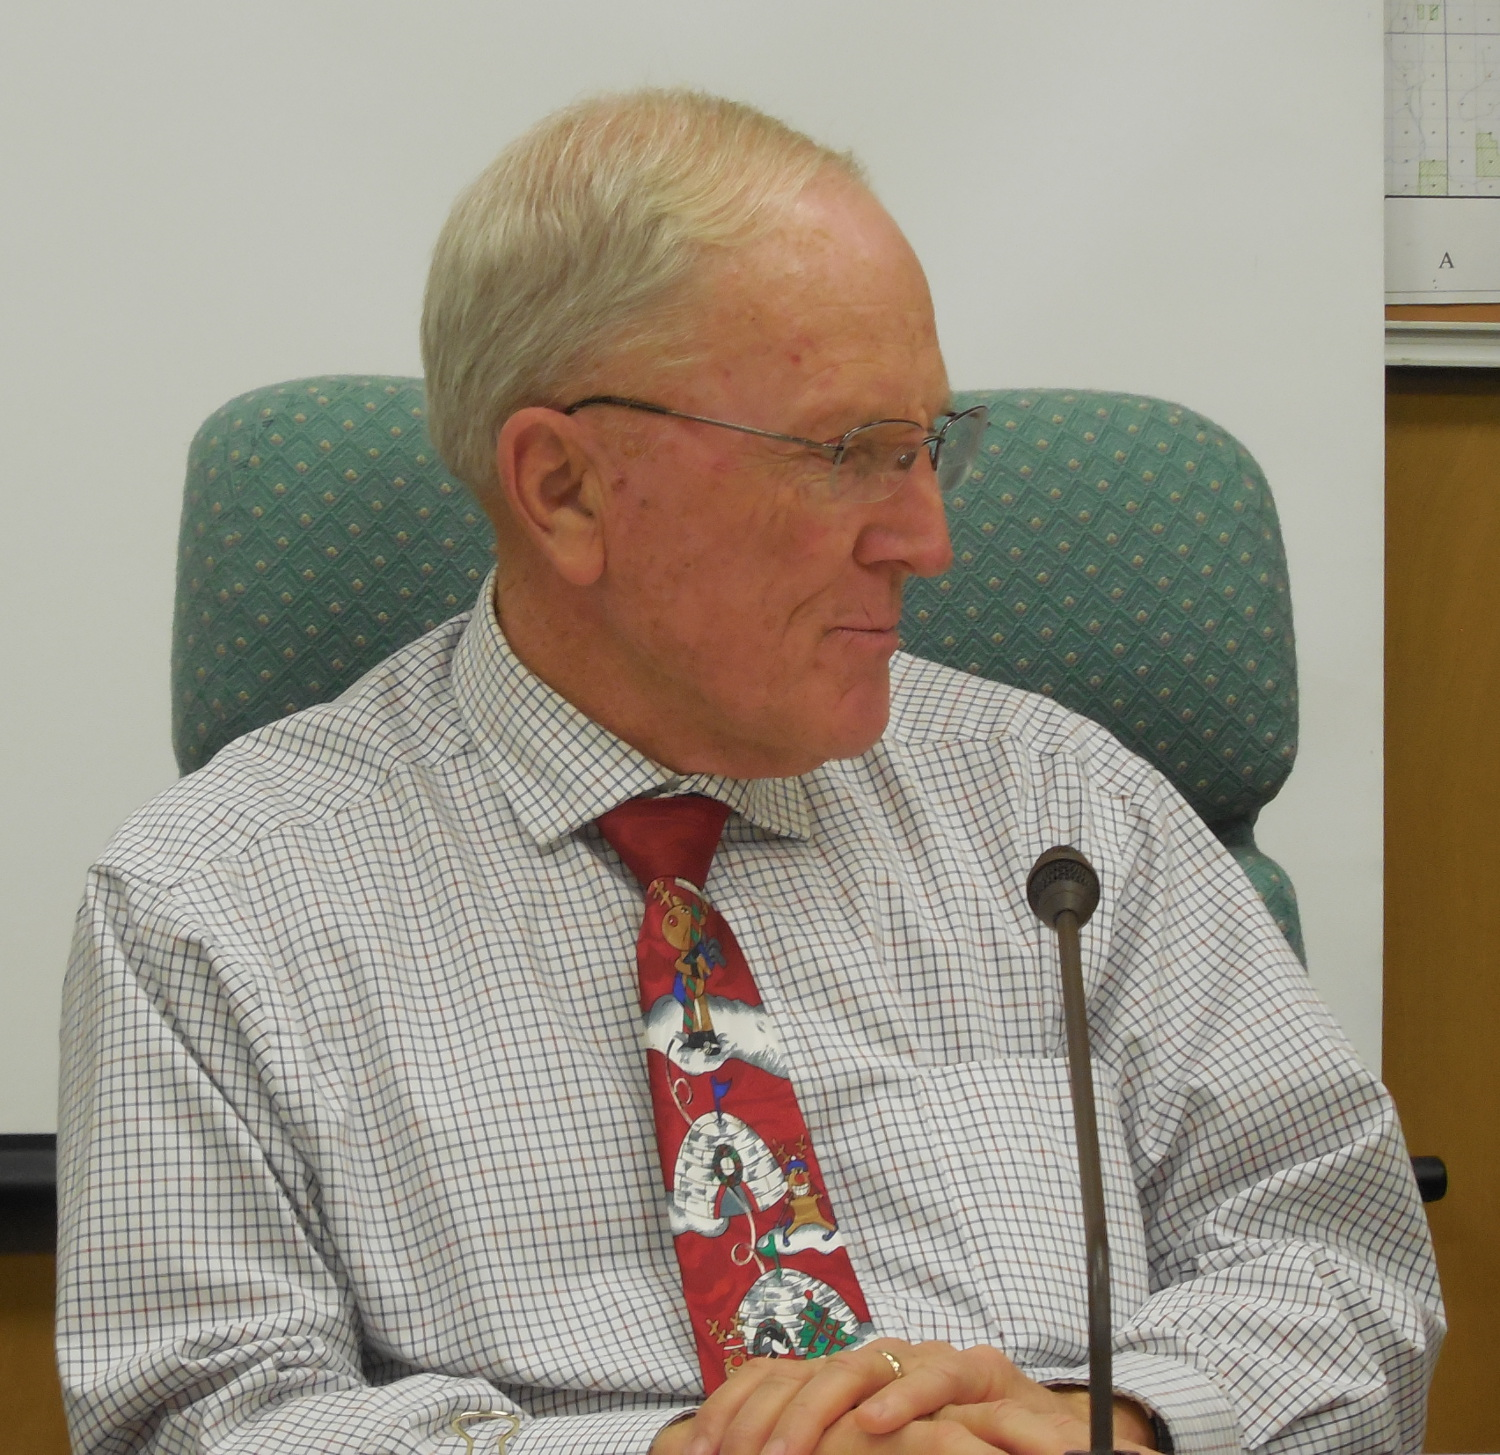 Washington County Commissioner Alan Gardner is retiring from the County Commission, St. George, Utah, Dec. 21, 2016 | Photo by Julie Applegate, St. George News